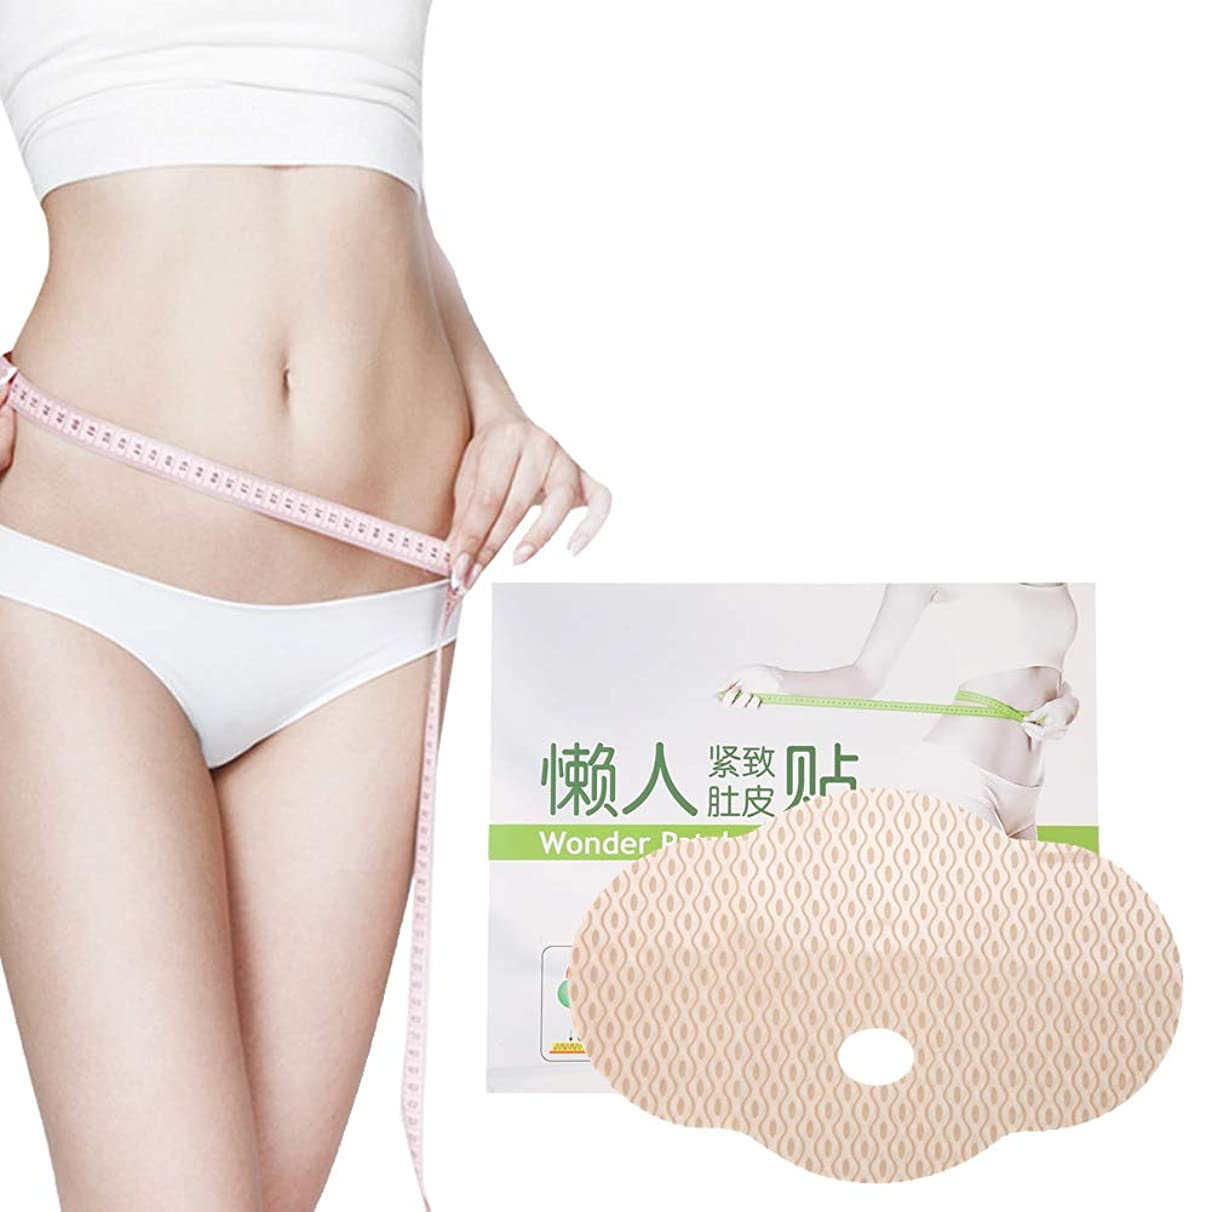 TMISHION Slimming Patch, 3pcs Waist Belly Shape Pad Stick Body Detox Delicate Firming Tighten Skin Health Care Product